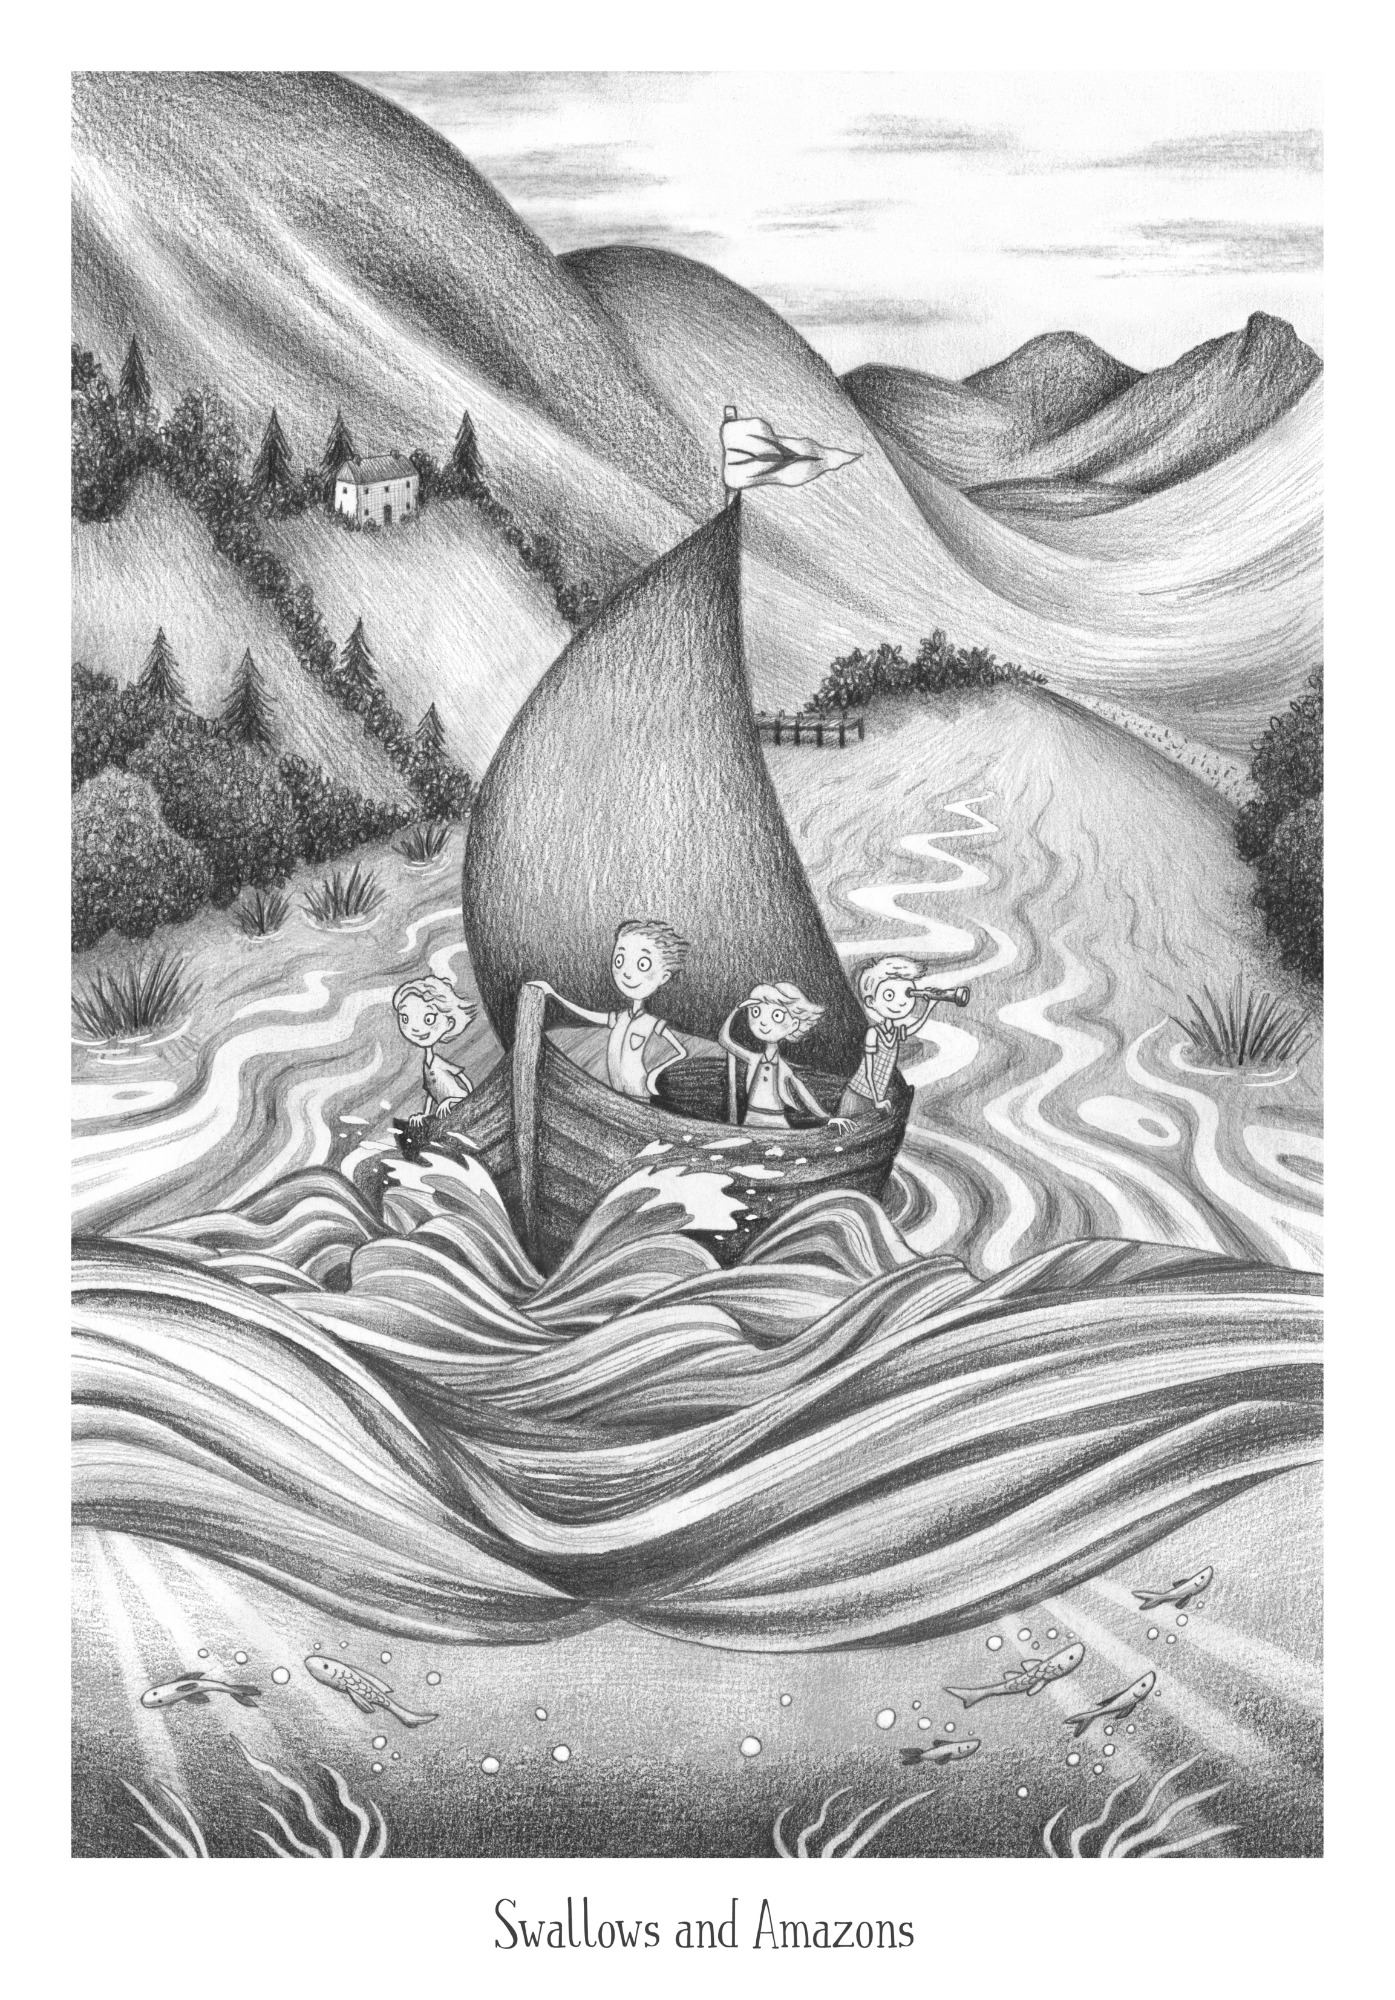 Swallows and Amazons illustration